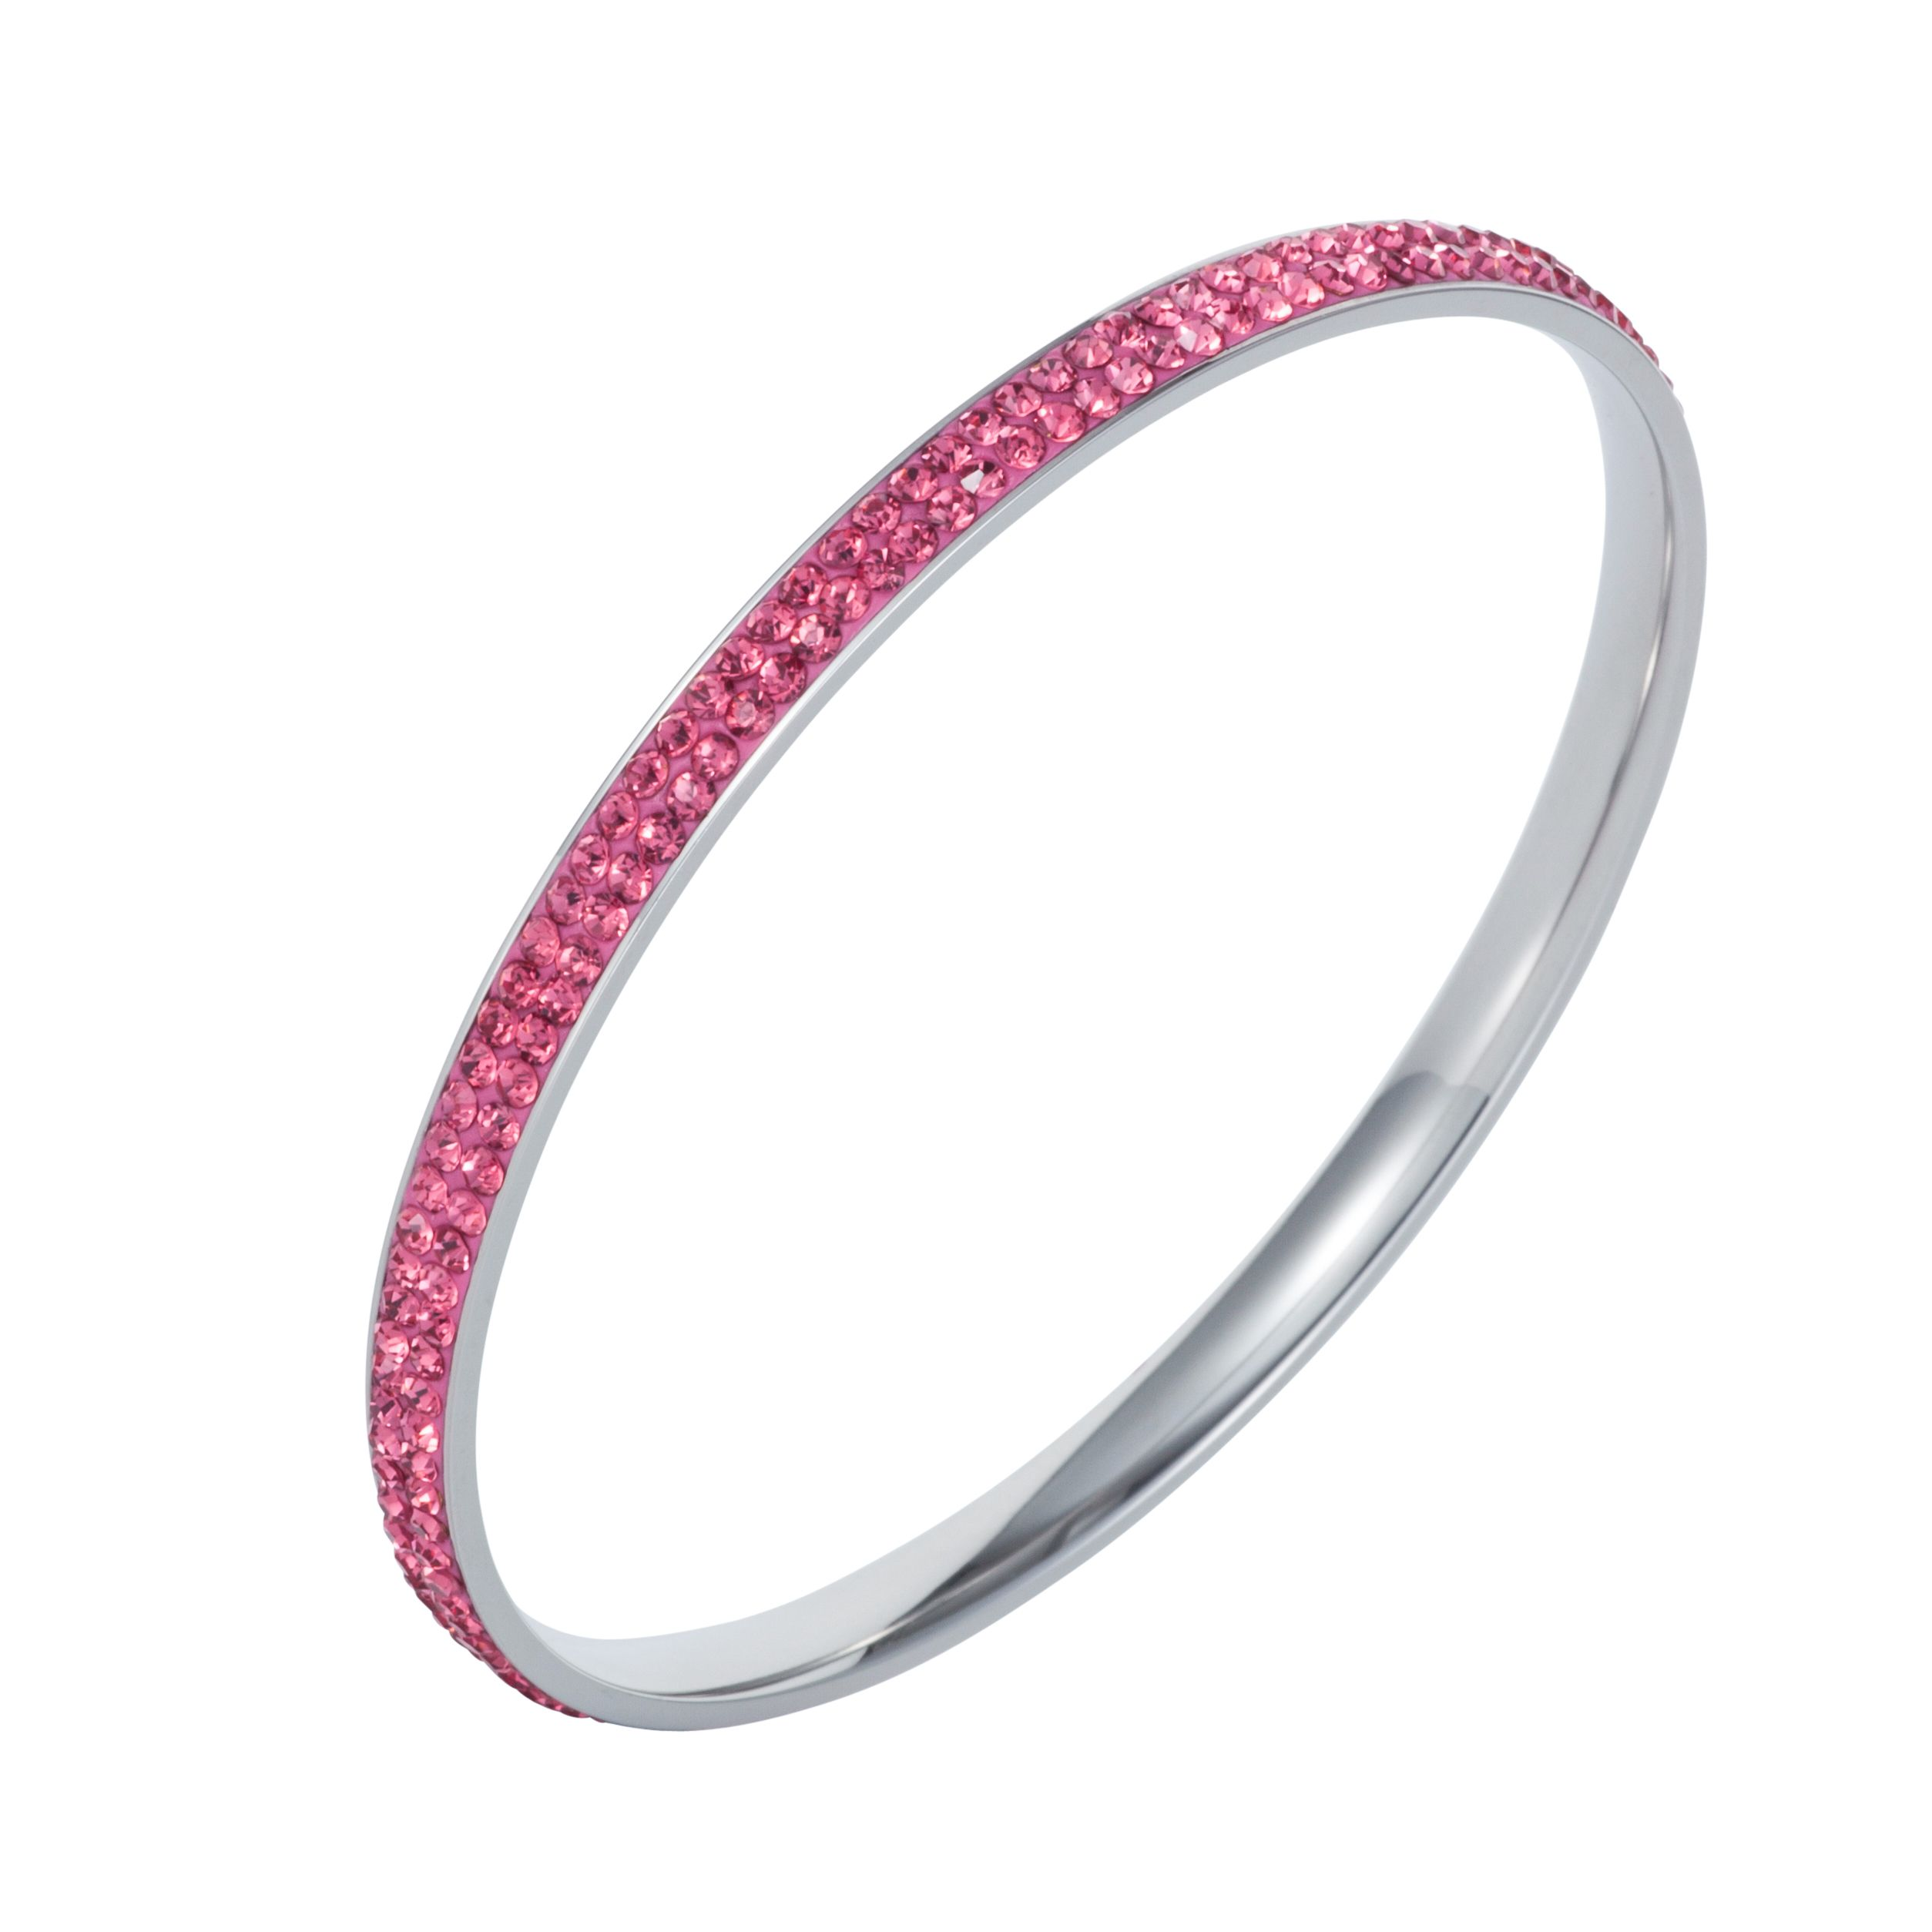 Stainless steel cubic zirconia pink bangle